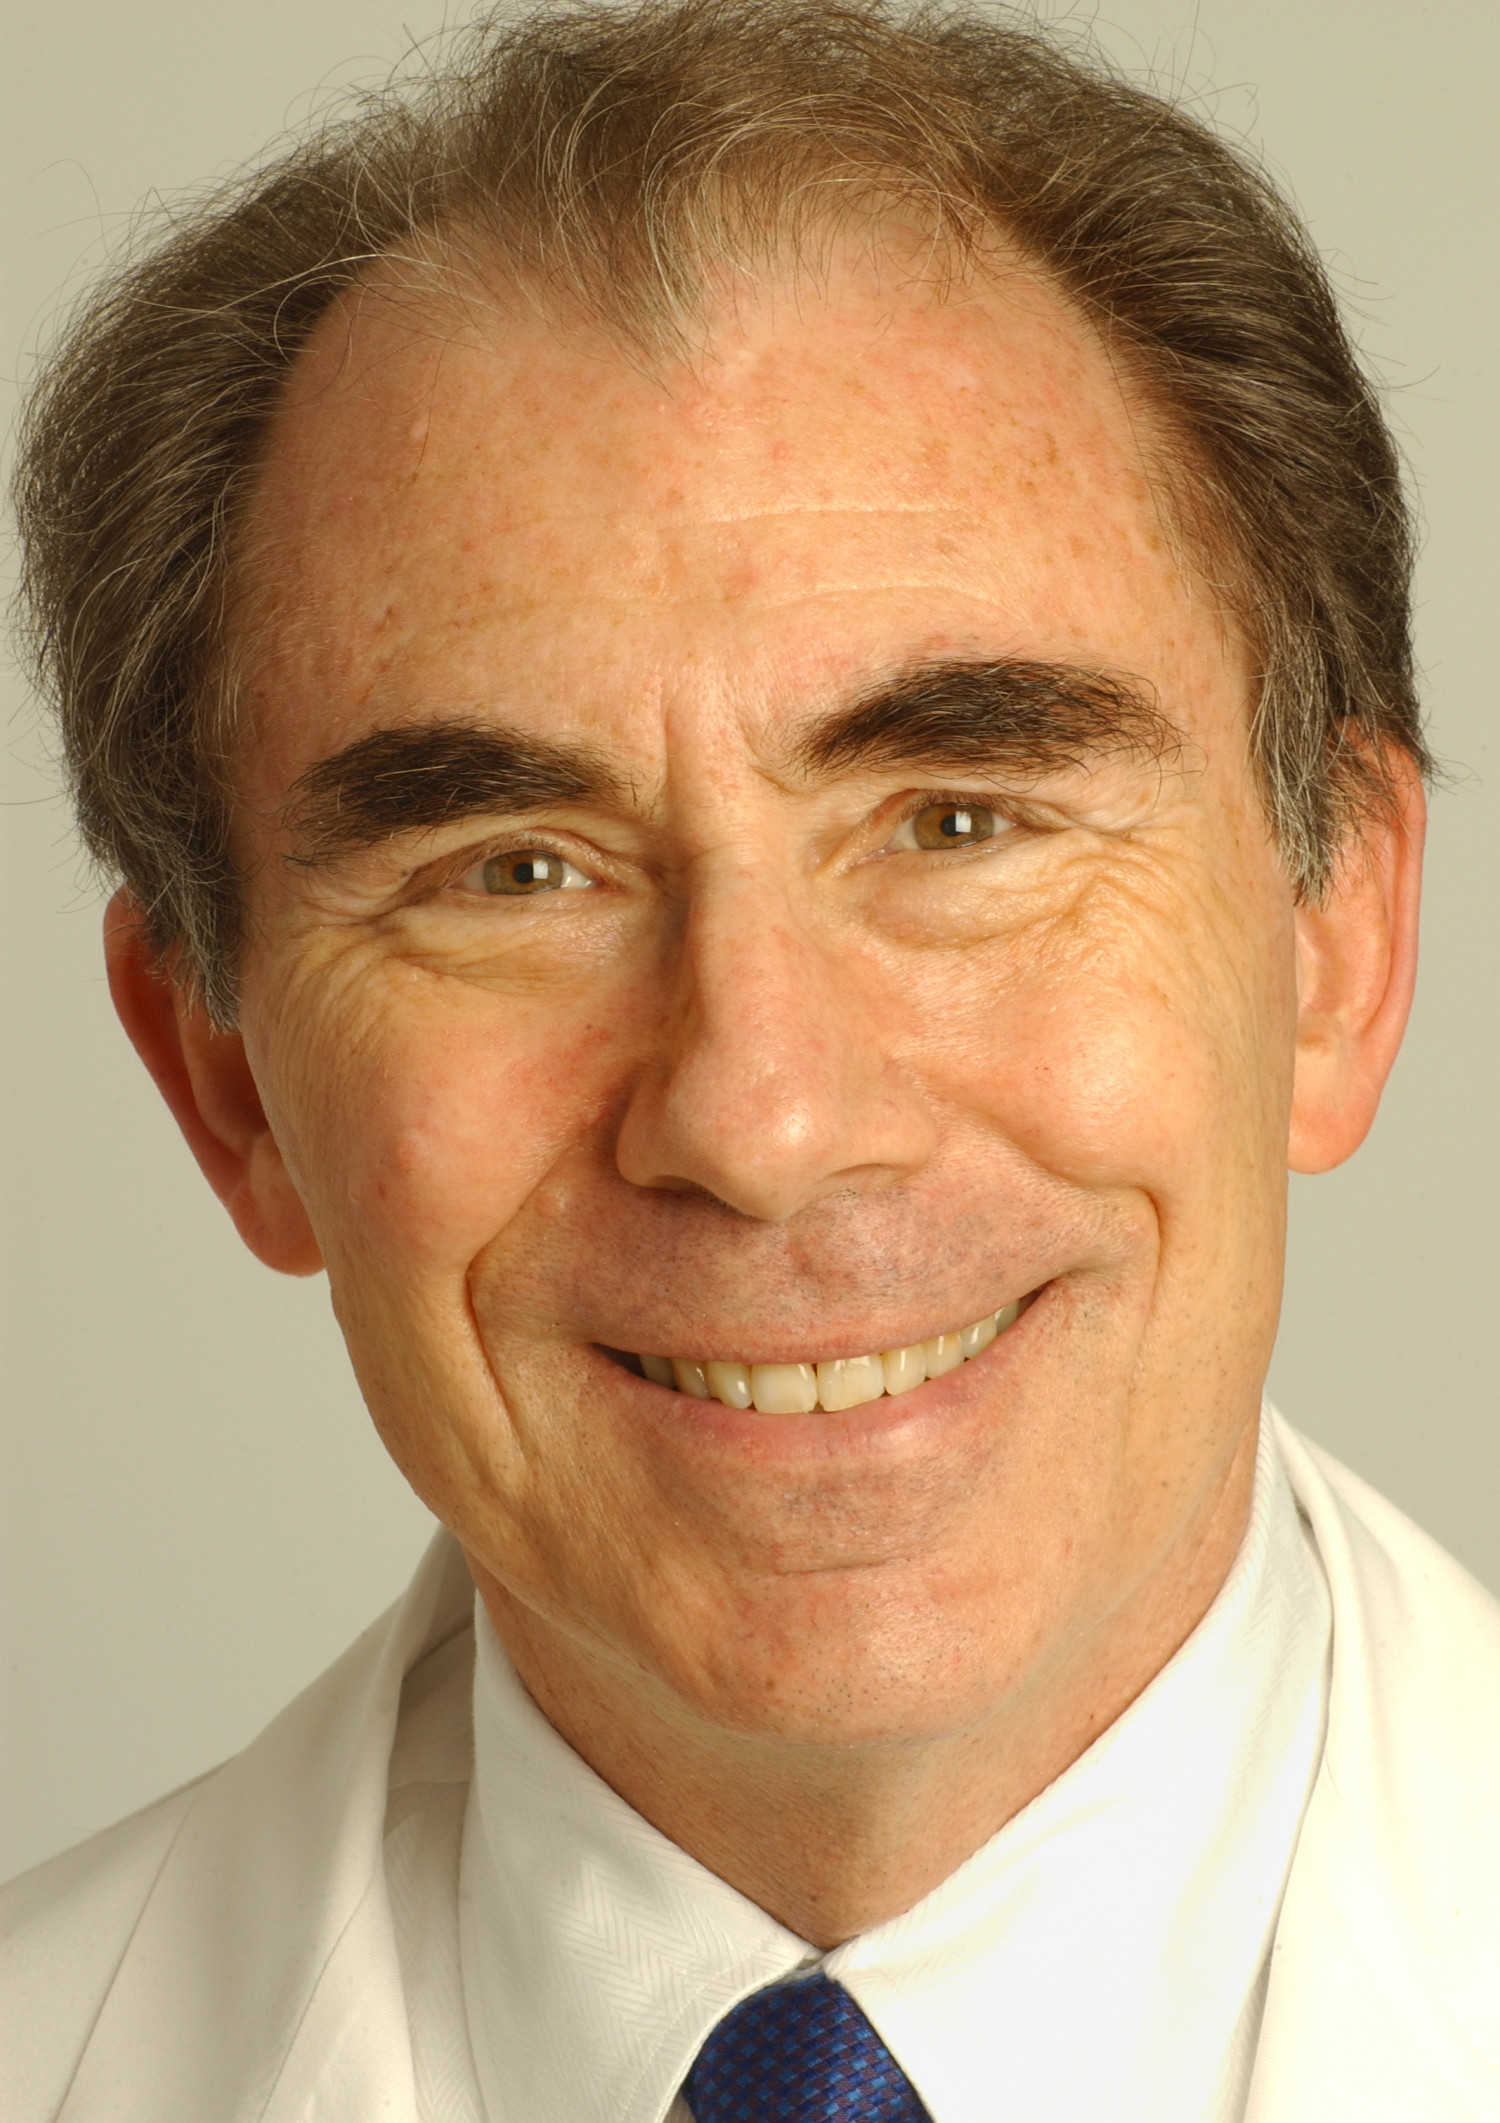 Anthony Komaroff, MD